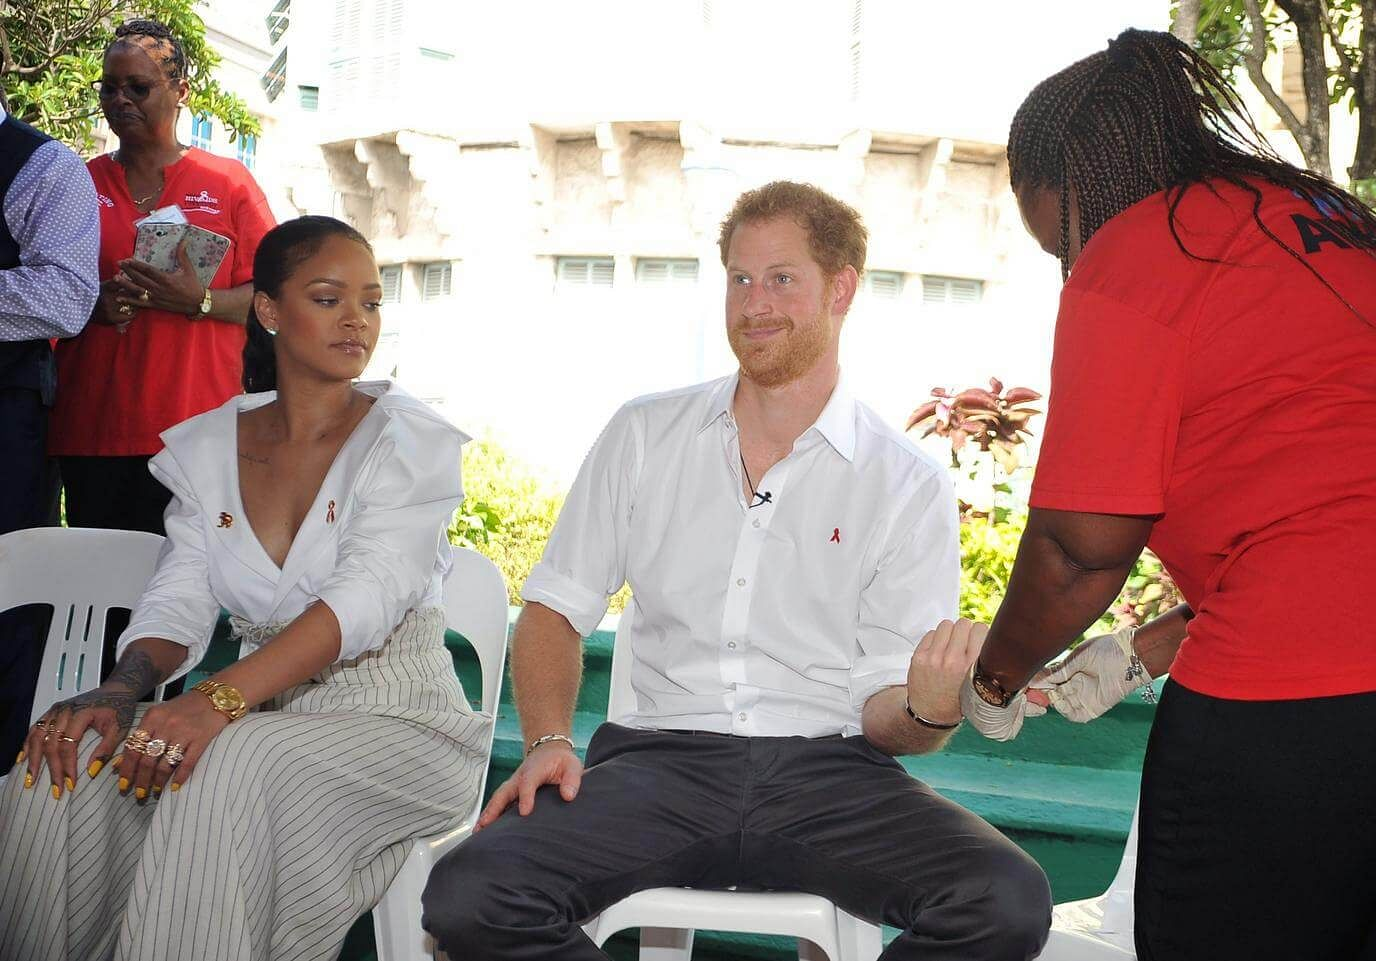 Prince Harry joins Rihanna at celebration in Barbados